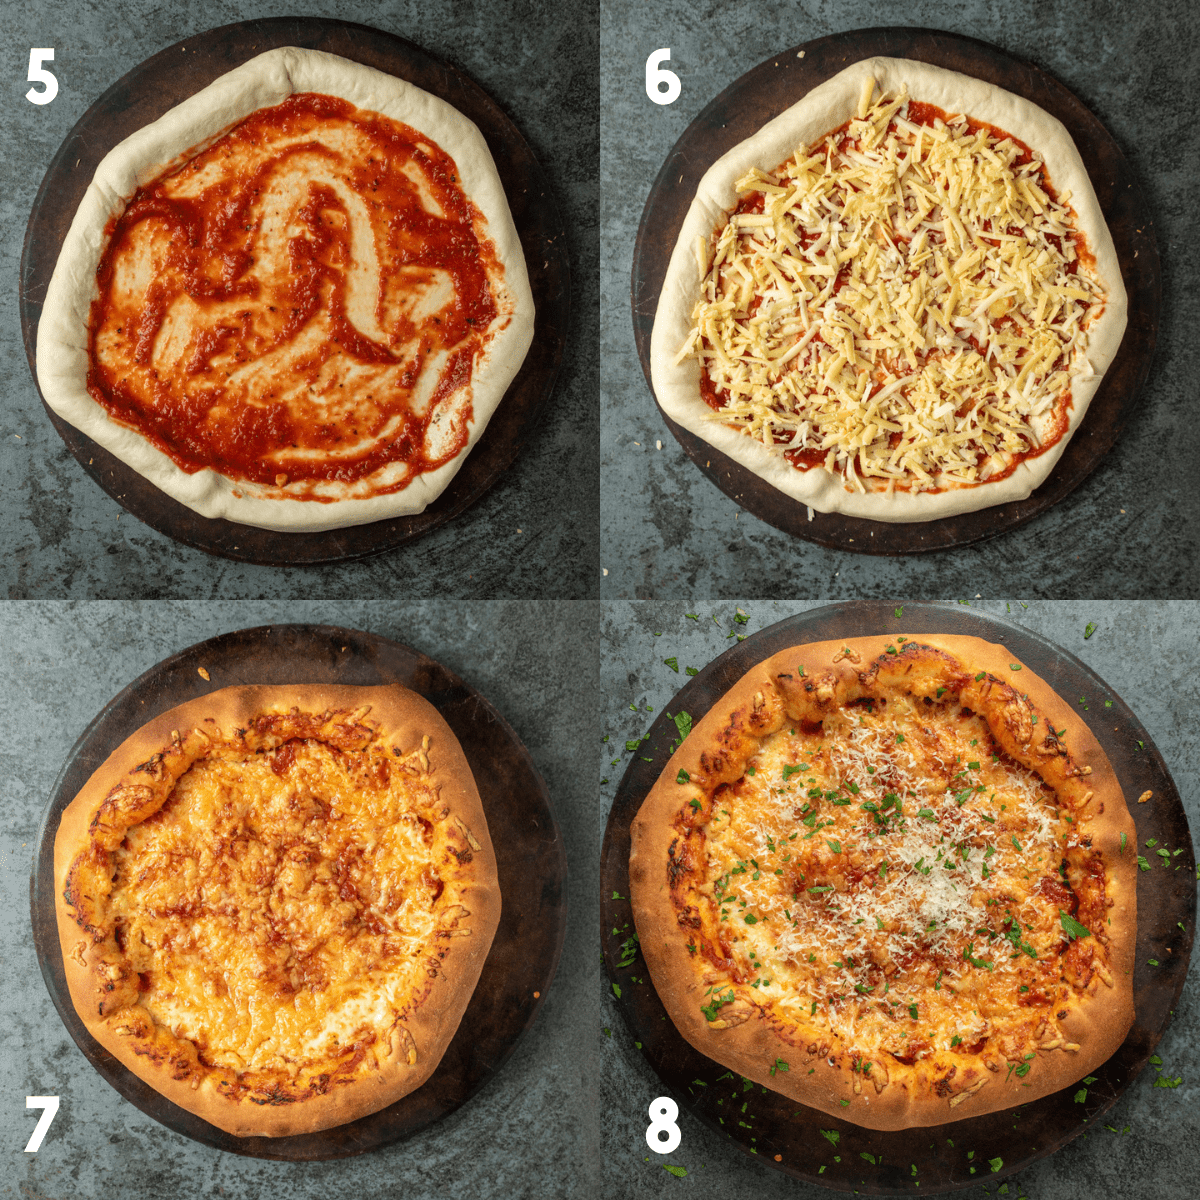 A second 2x2 collage of process photos. Photo 5: A raw pizza dough rolled out thin on a pizza stone, the crust has been sealed. Pizza sauce is added to the center of the pizza. Photo 6: Shredded cheese is evenly added on top of the suace. Photo 7: After the pizza has been cooked, crust is golden. Photo 8: Full cooked stuffed crust pizza on pizza stone, garnished with parmesan and parsley.